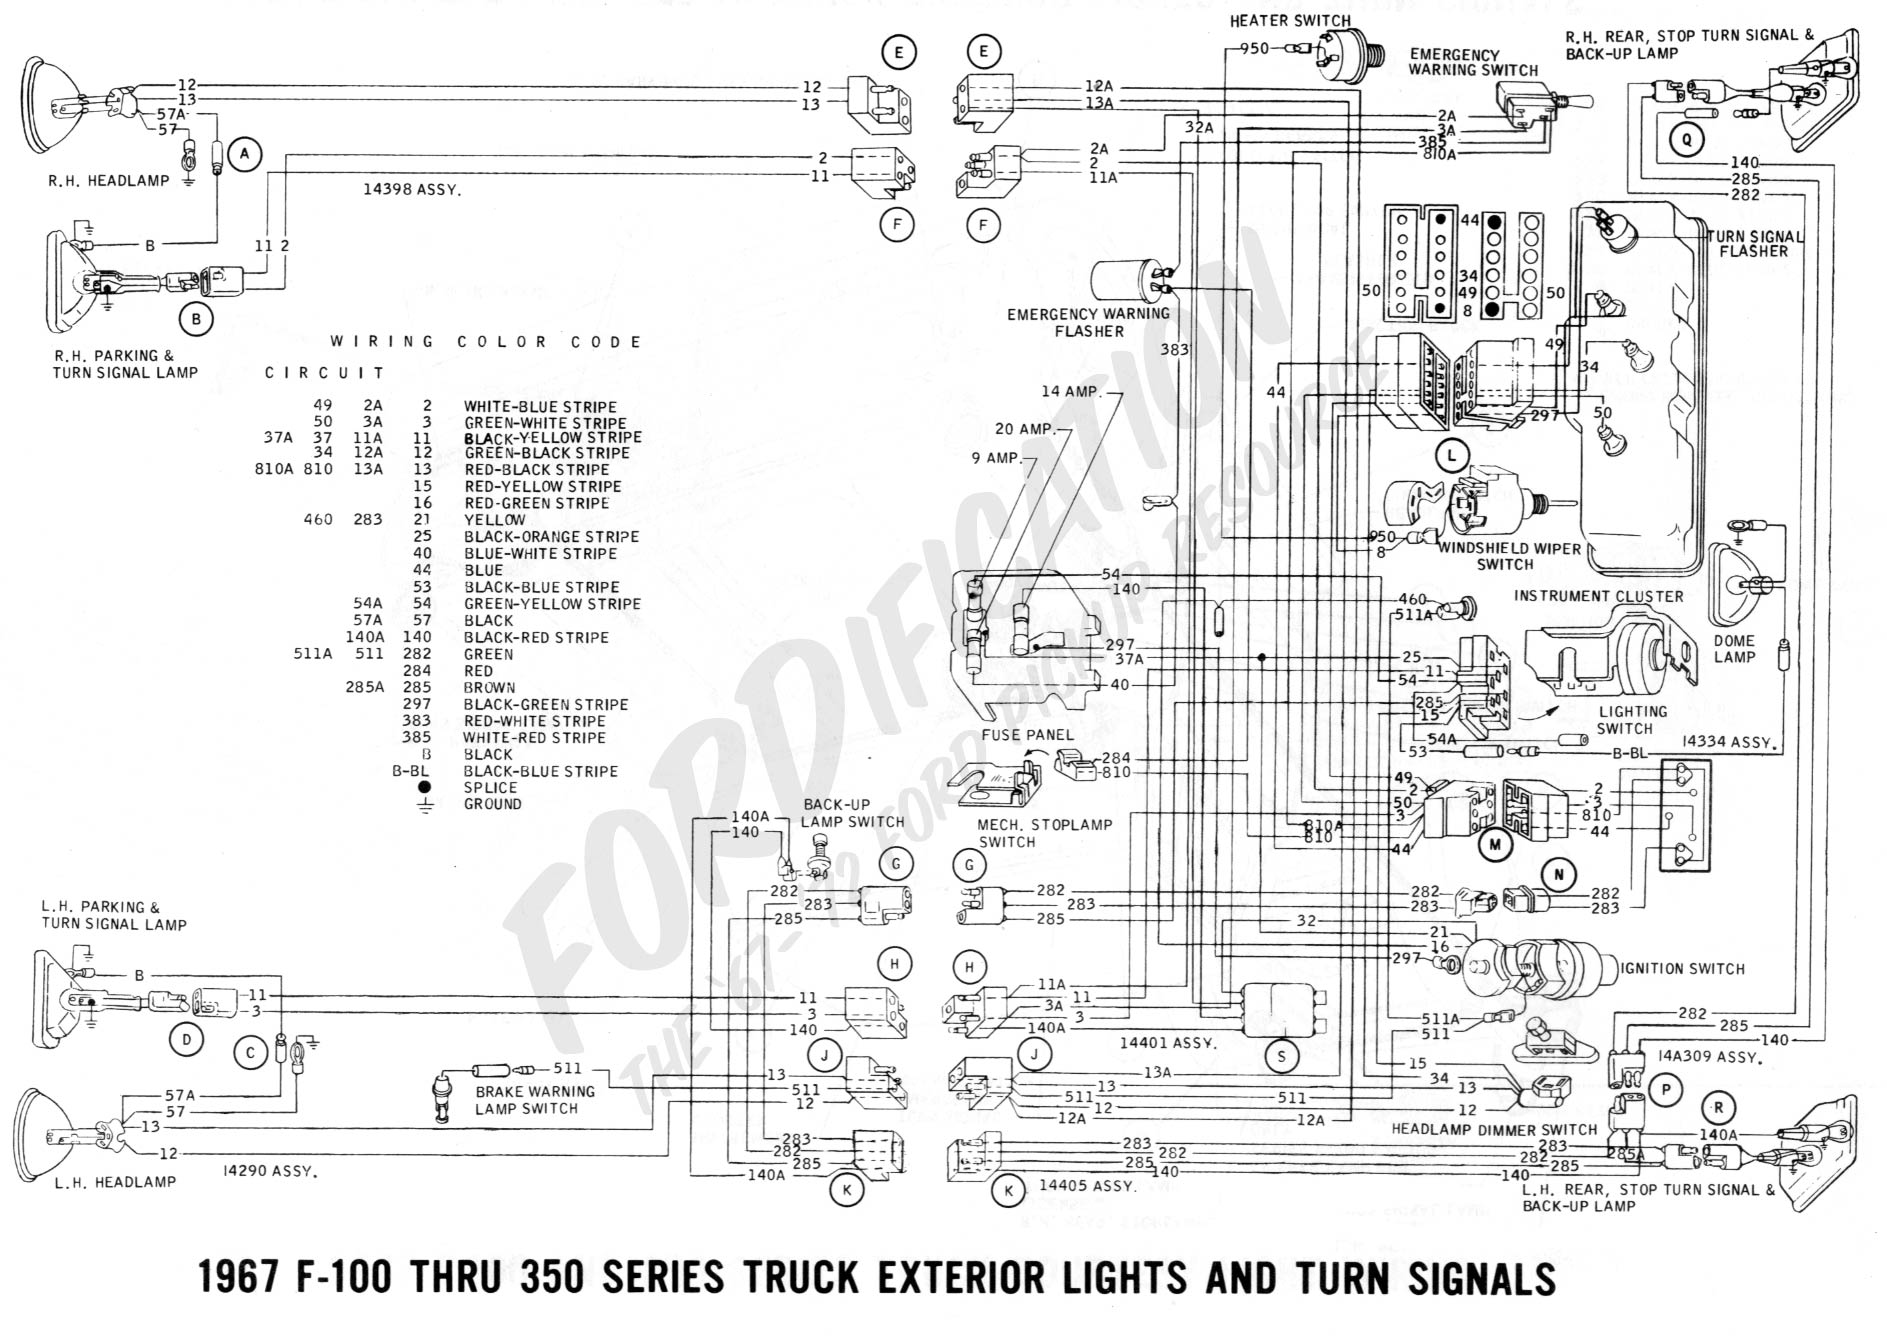 4BFFC 1970 Dodge Charger Wiring Diagram | Wiring Resources 2019 on 1988 mustang wiring diagram, 67 charger wiring diagram, 1967 charger headlights, 1983 mustang wiring diagram, 1969 barracuda wiring diagram, 1984 mustang wiring diagram, 1968 charger wiring diagram, 1967 charger automatic transmission, 1970 challenger wiring diagram, 1986 mustang wiring diagram, 1995 mustang wiring diagram, 1970 charger wiring diagram, 1966 charger wiring diagram, 1969 charger wiring diagram, 1970 dart wiring diagram, 1979 mustang wiring diagram, 1968 roadrunner wiring diagram, 1967 charger seats, 1973 charger wiring diagram, 1969 roadrunner wiring diagram,